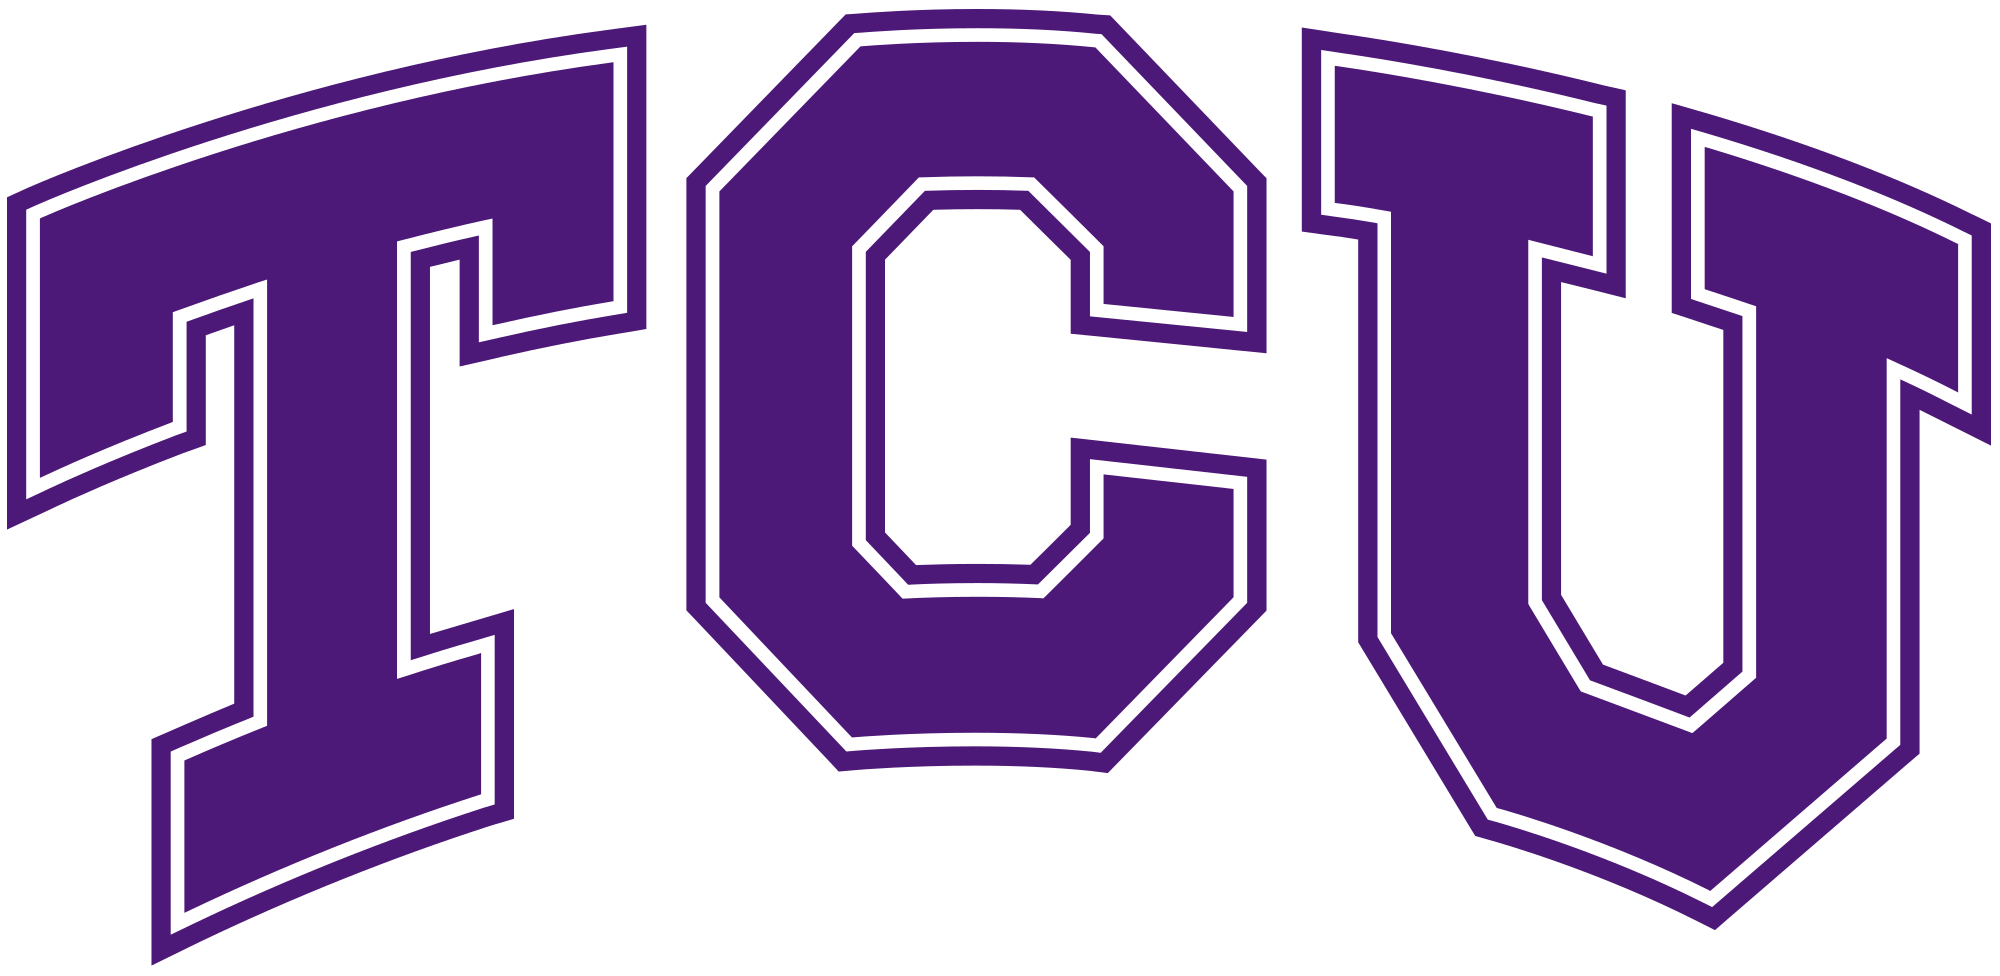 Tcu Horned Frogs Logo Tcu Frog Logo Tcu Horned Frogs